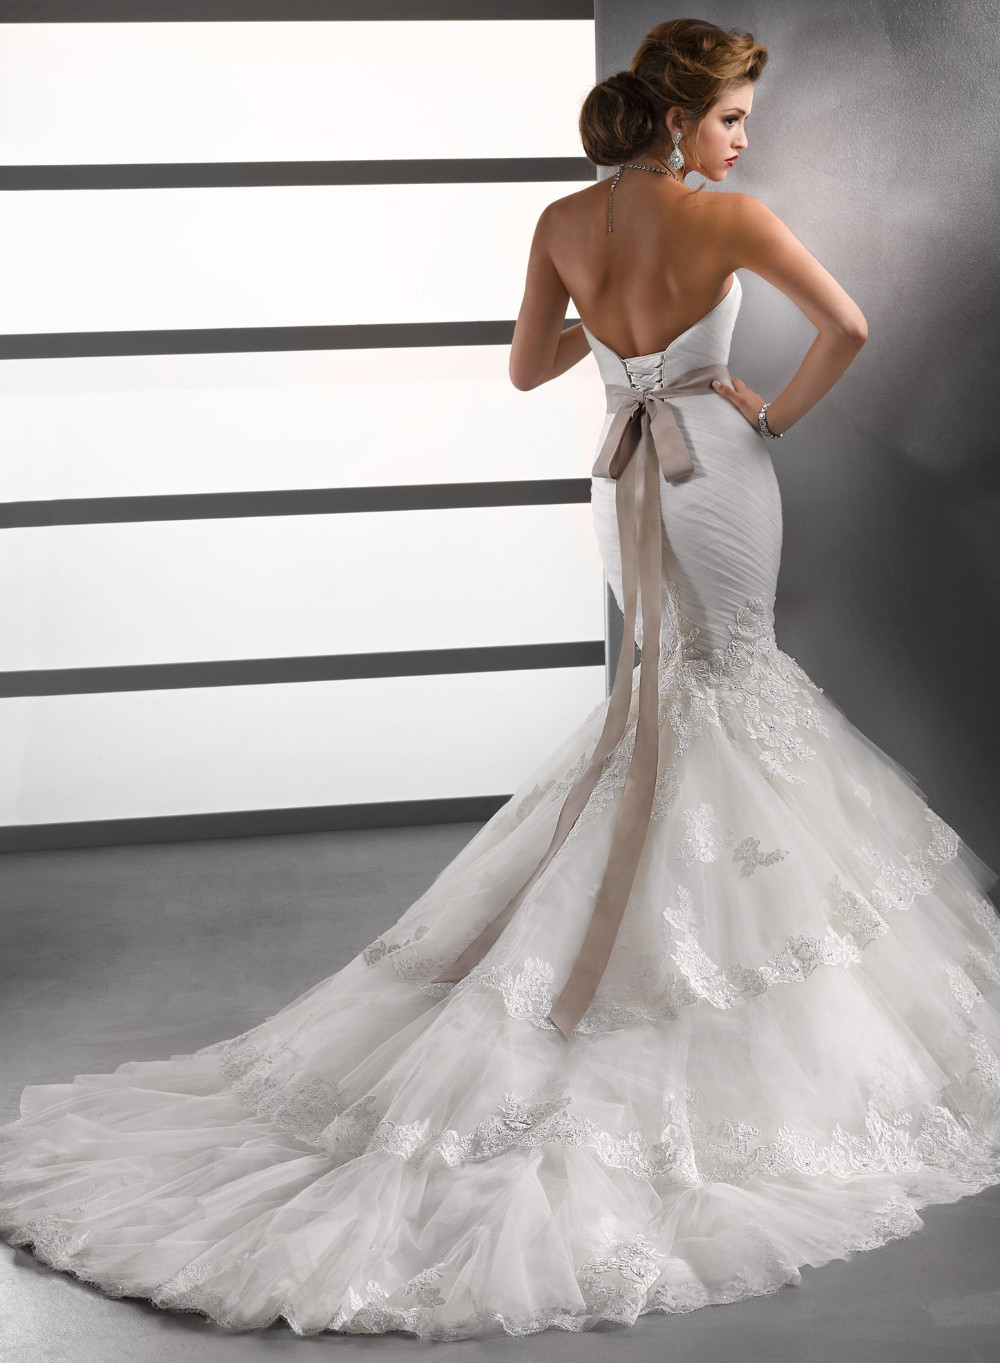 Fine Pnina Tornai Corset Wedding Gowns Images - Images for wedding ...